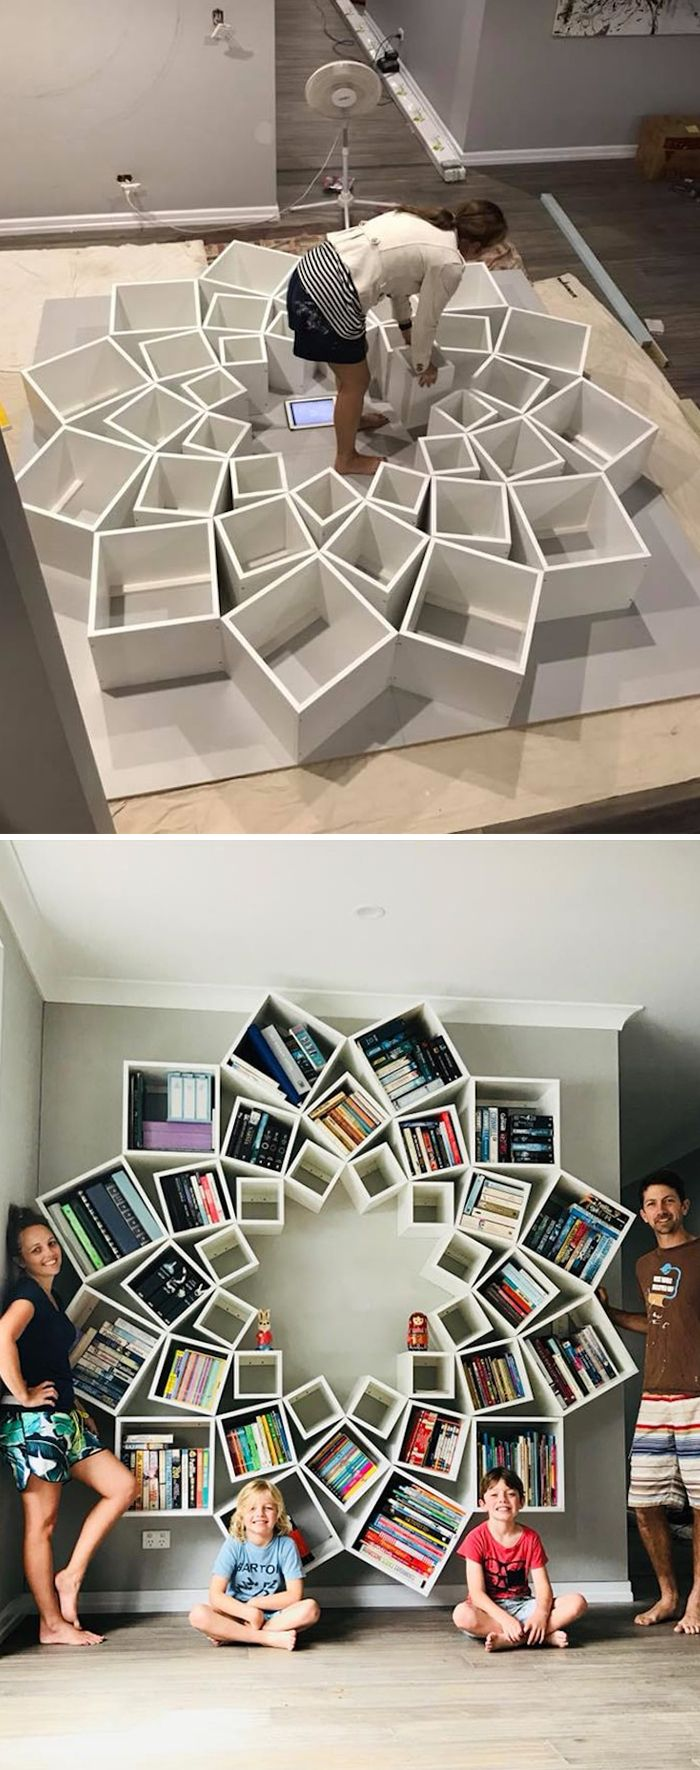 ღღ With so many projects being DIY fails, this family has found a win with this #bookshelf. #interiordesign #diyfurniture